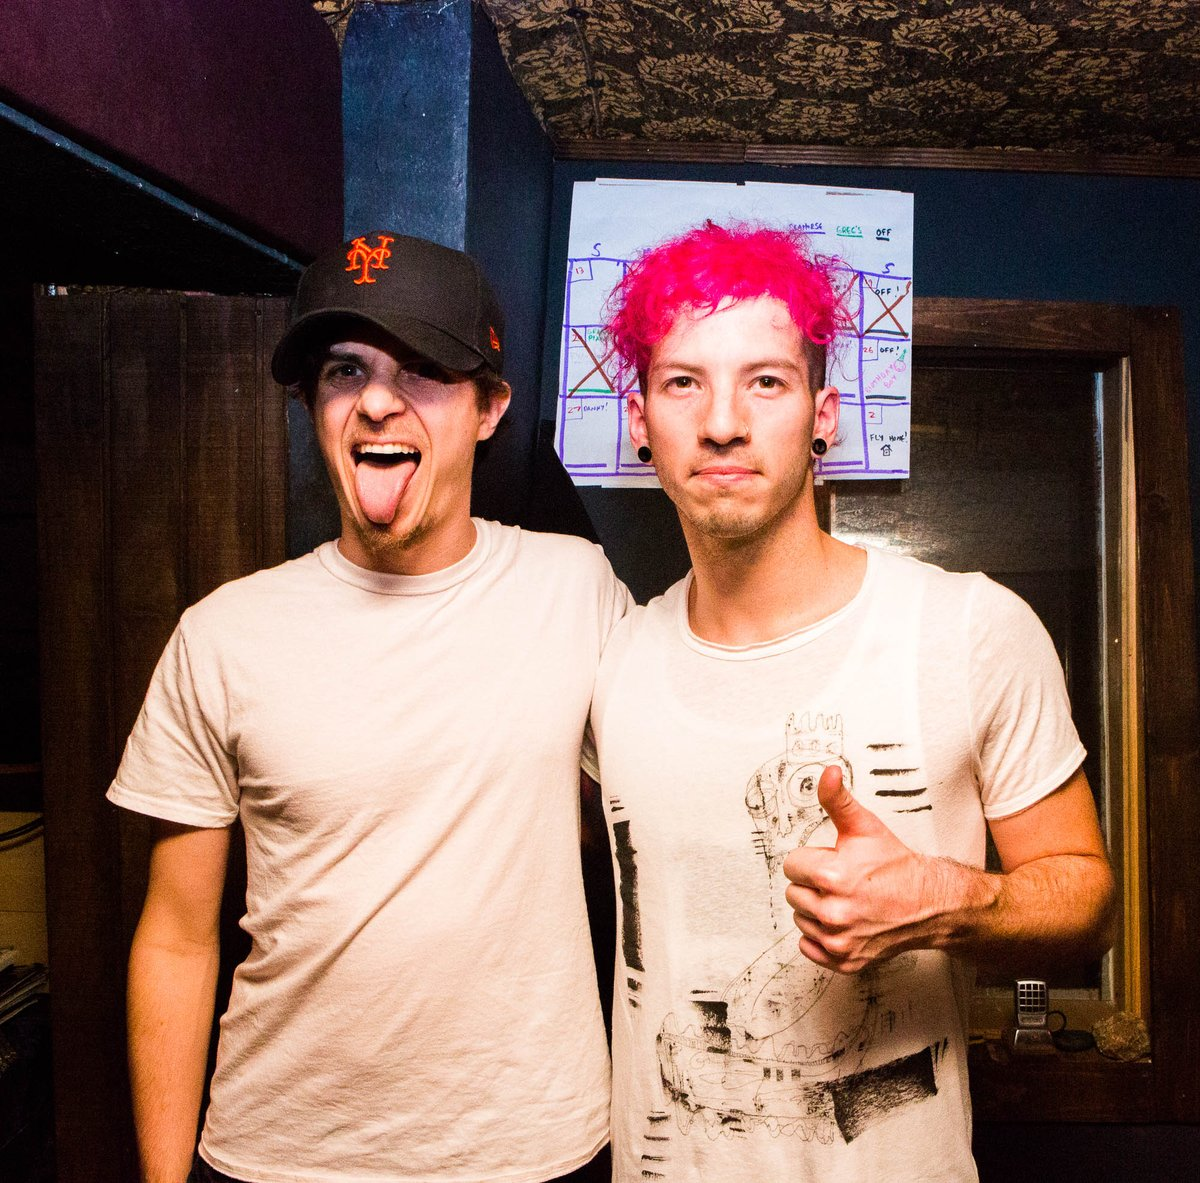 Thanks @joshuadun for cøming in to crush it on Midnight Heart! photos by @photostills https://t.co/wy9JXsvBAJ